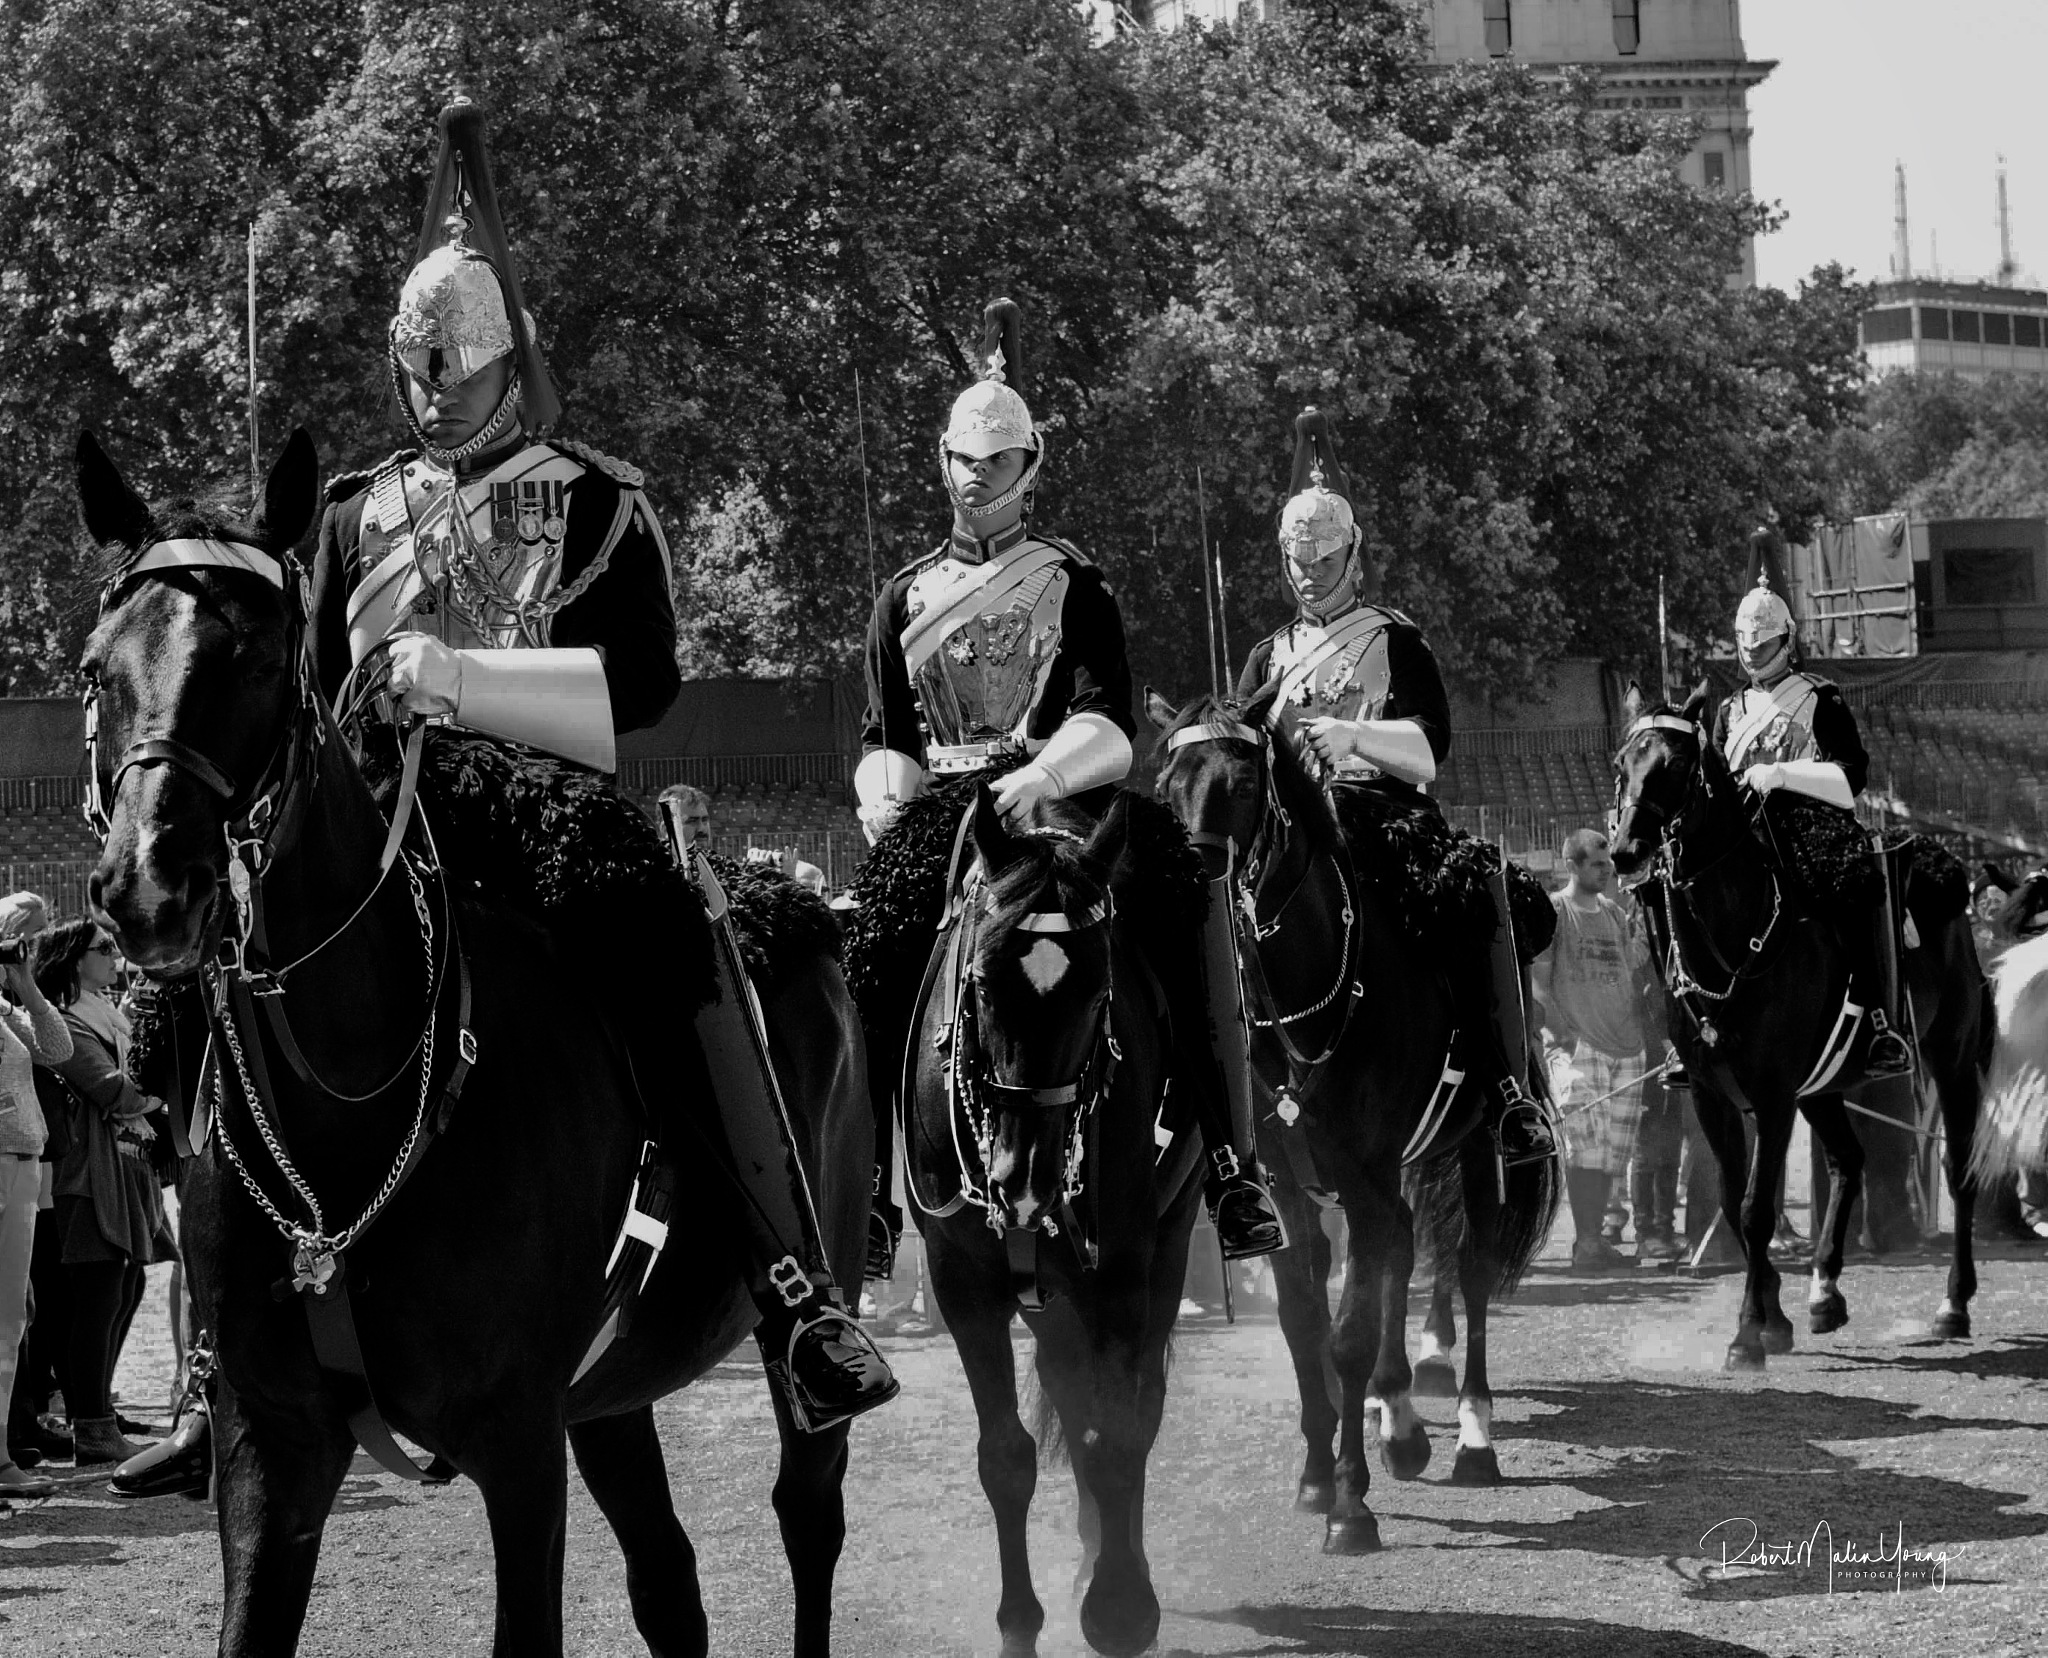 Horse Guards - London 2018 by Robert Malin Young